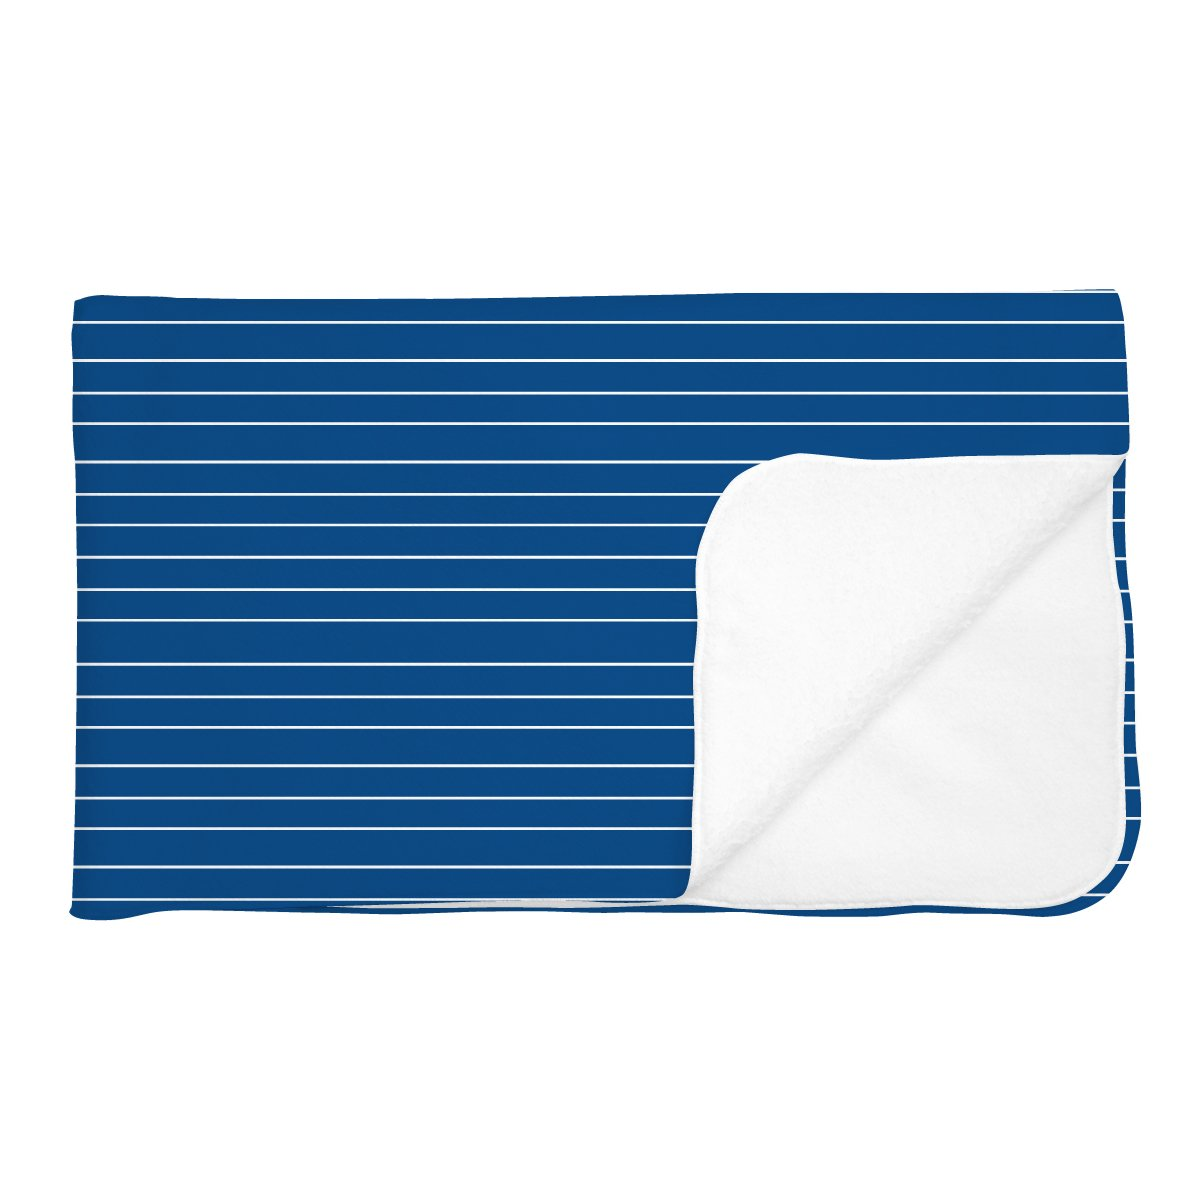 Brian's Pencil Stripes | Adult Size Blanket